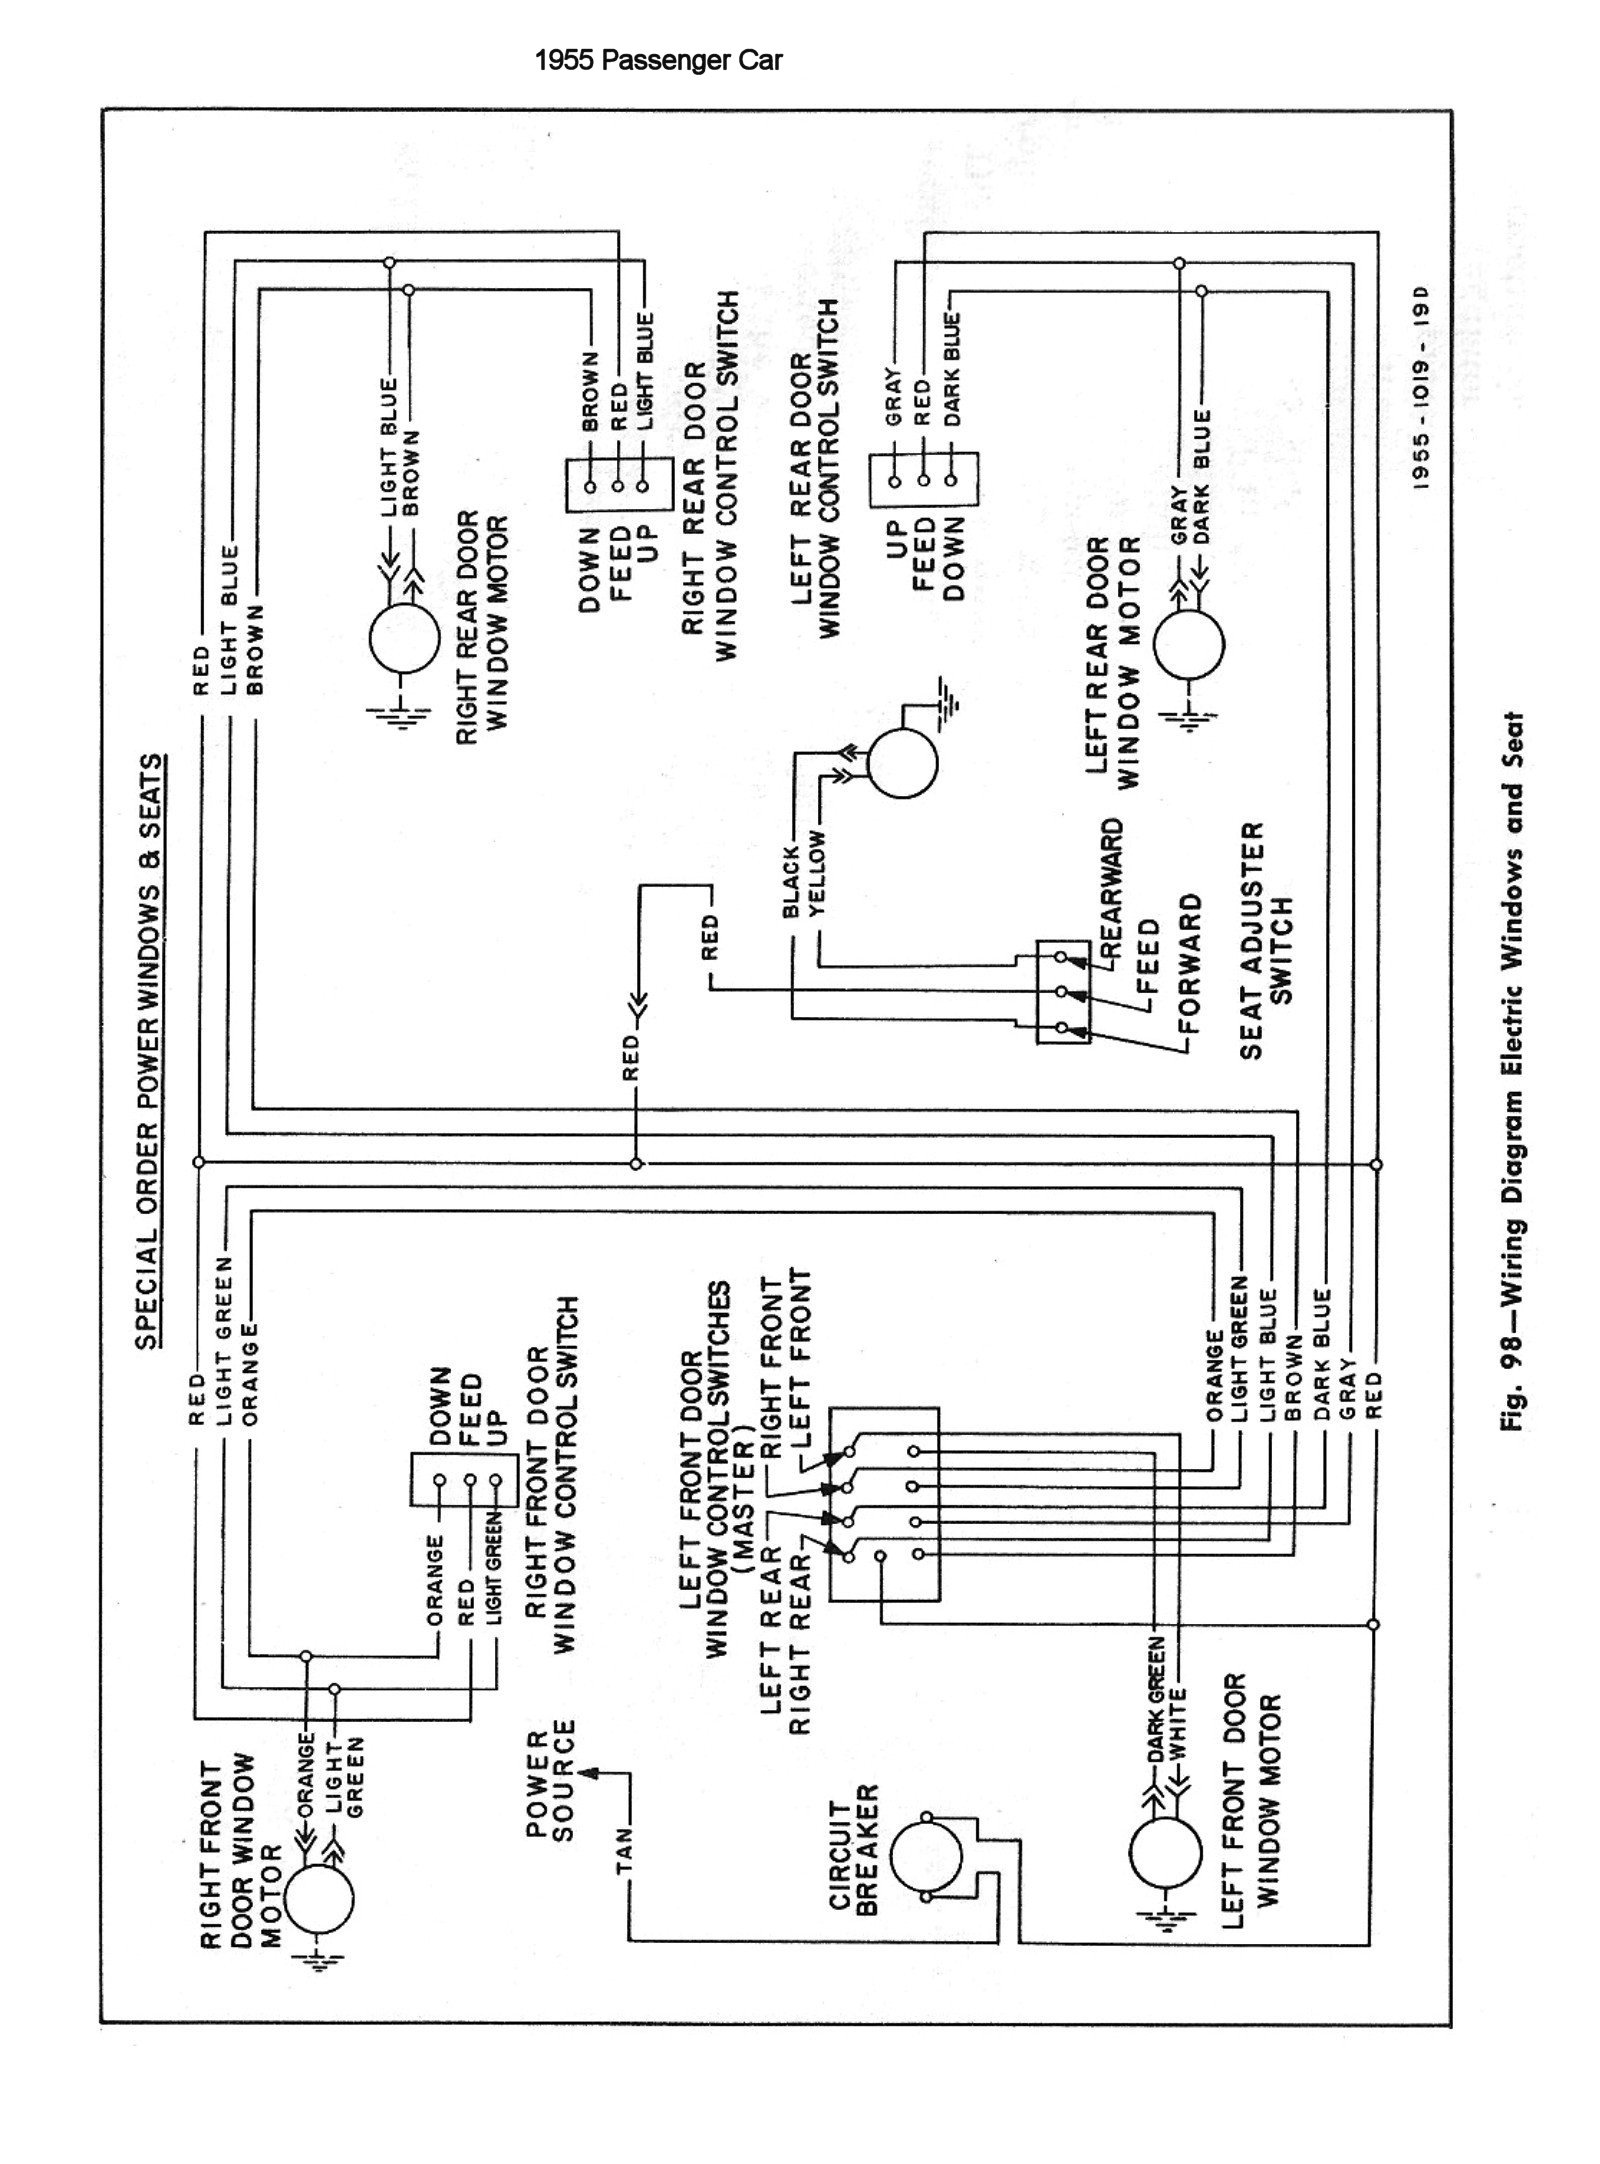 55csm0146 chevy wiring diagrams Basic Engine Wiring Diagram Chevy at edmiracle.co